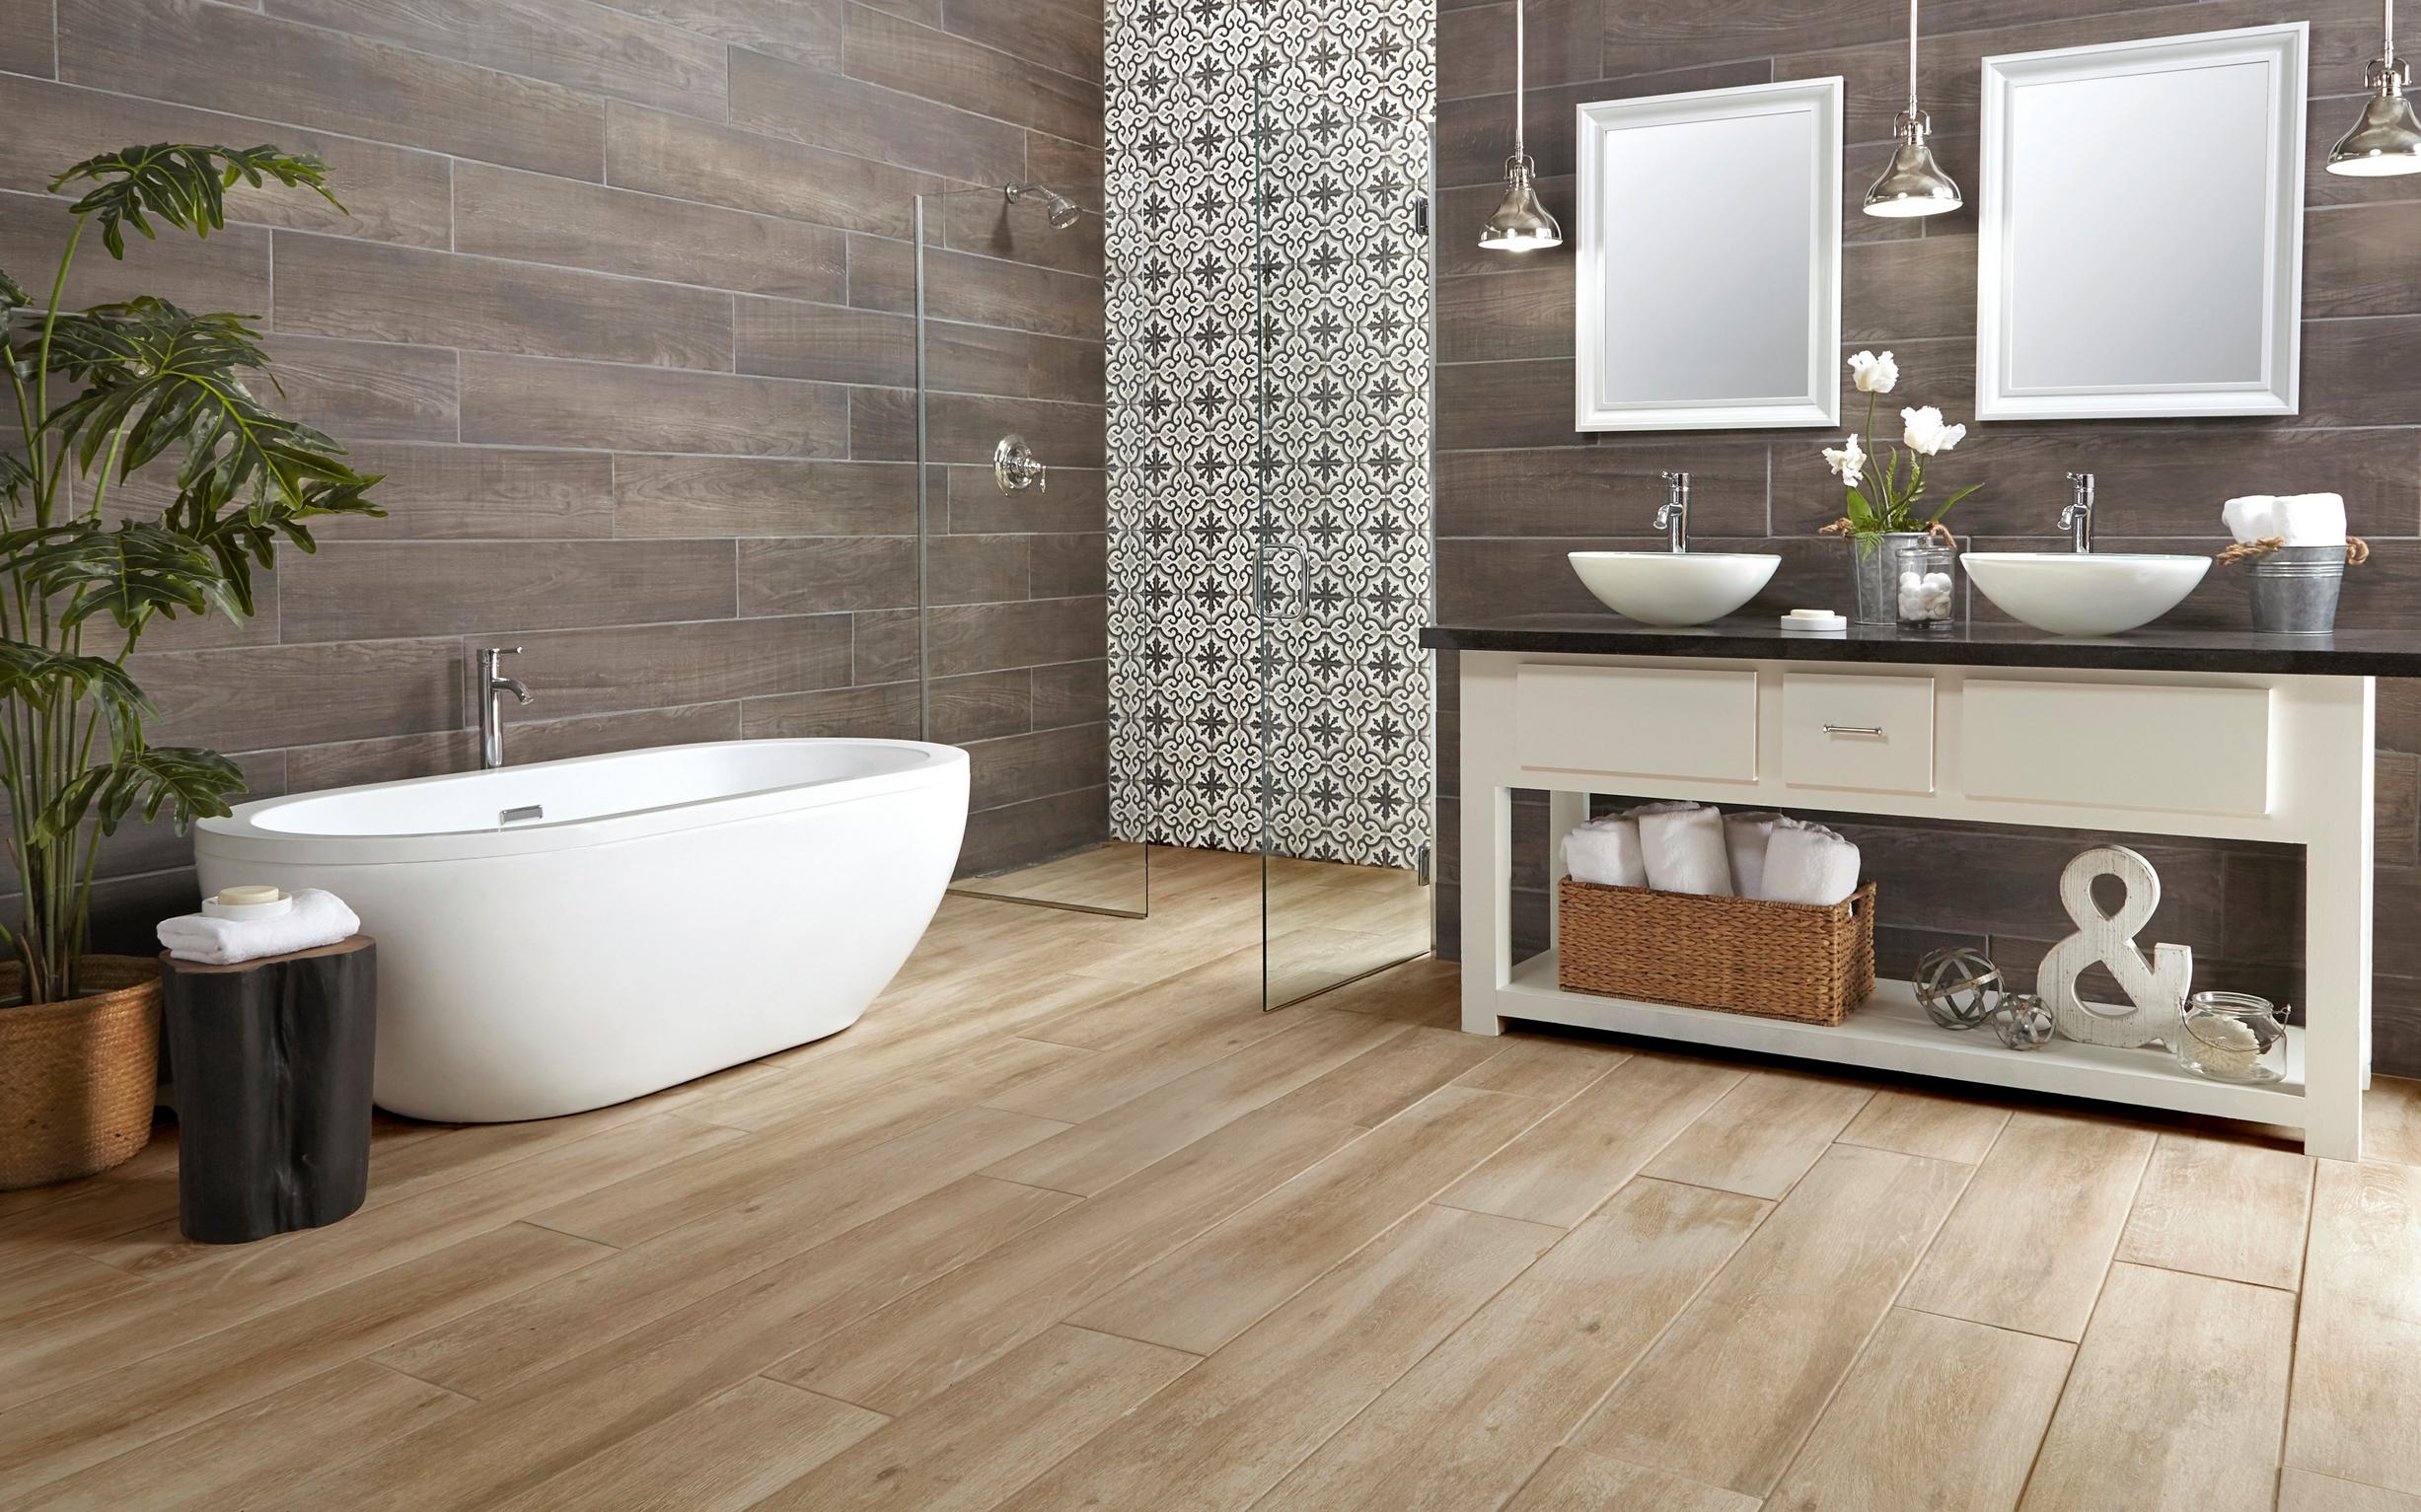 Bathroom 2 Truewood Cream Wood Plank Porcelain Tile Laguna Anthracite